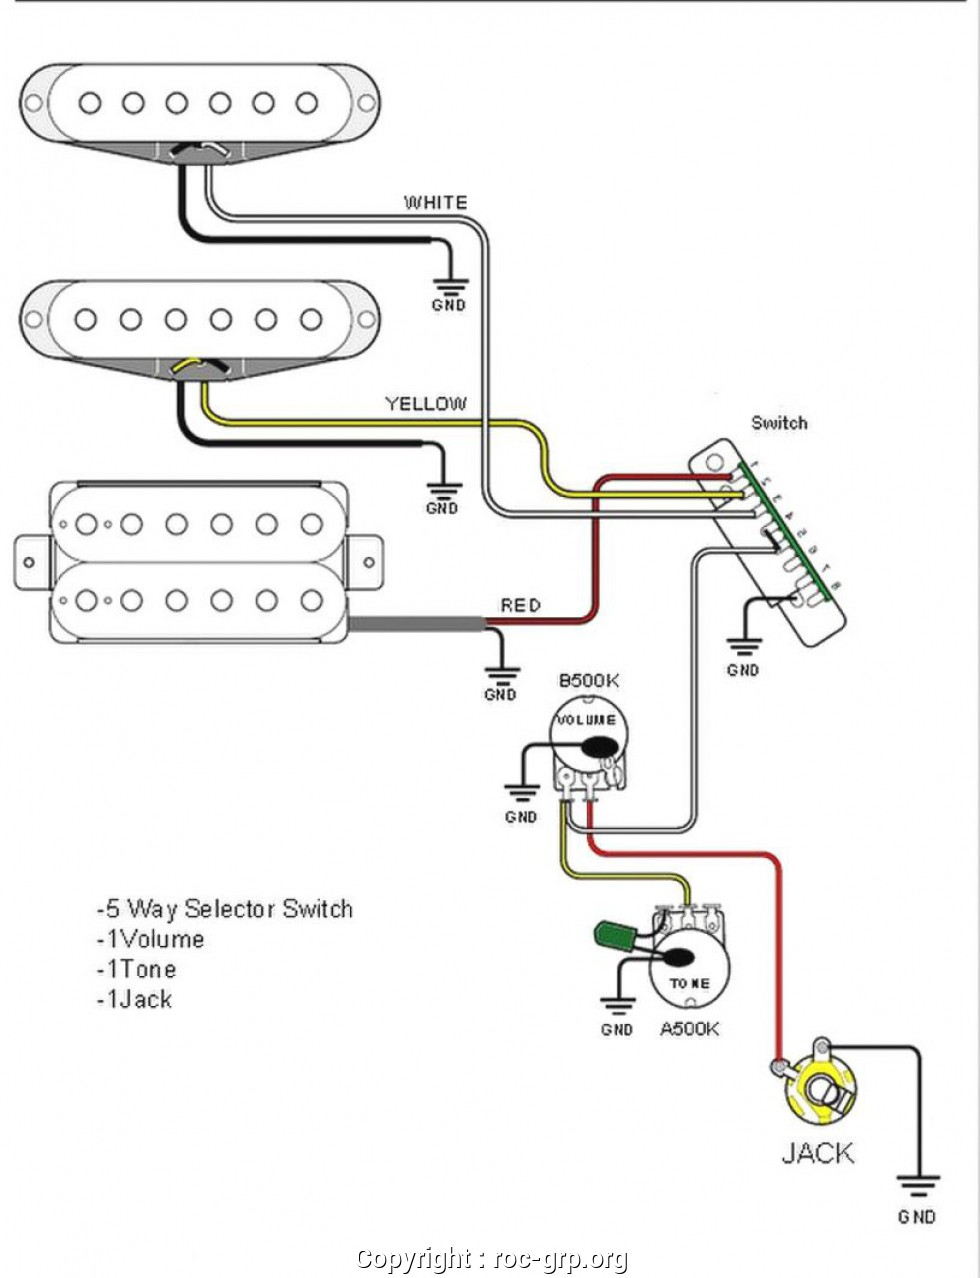 Esquire Wiring Diagram from 2020cadillac.com